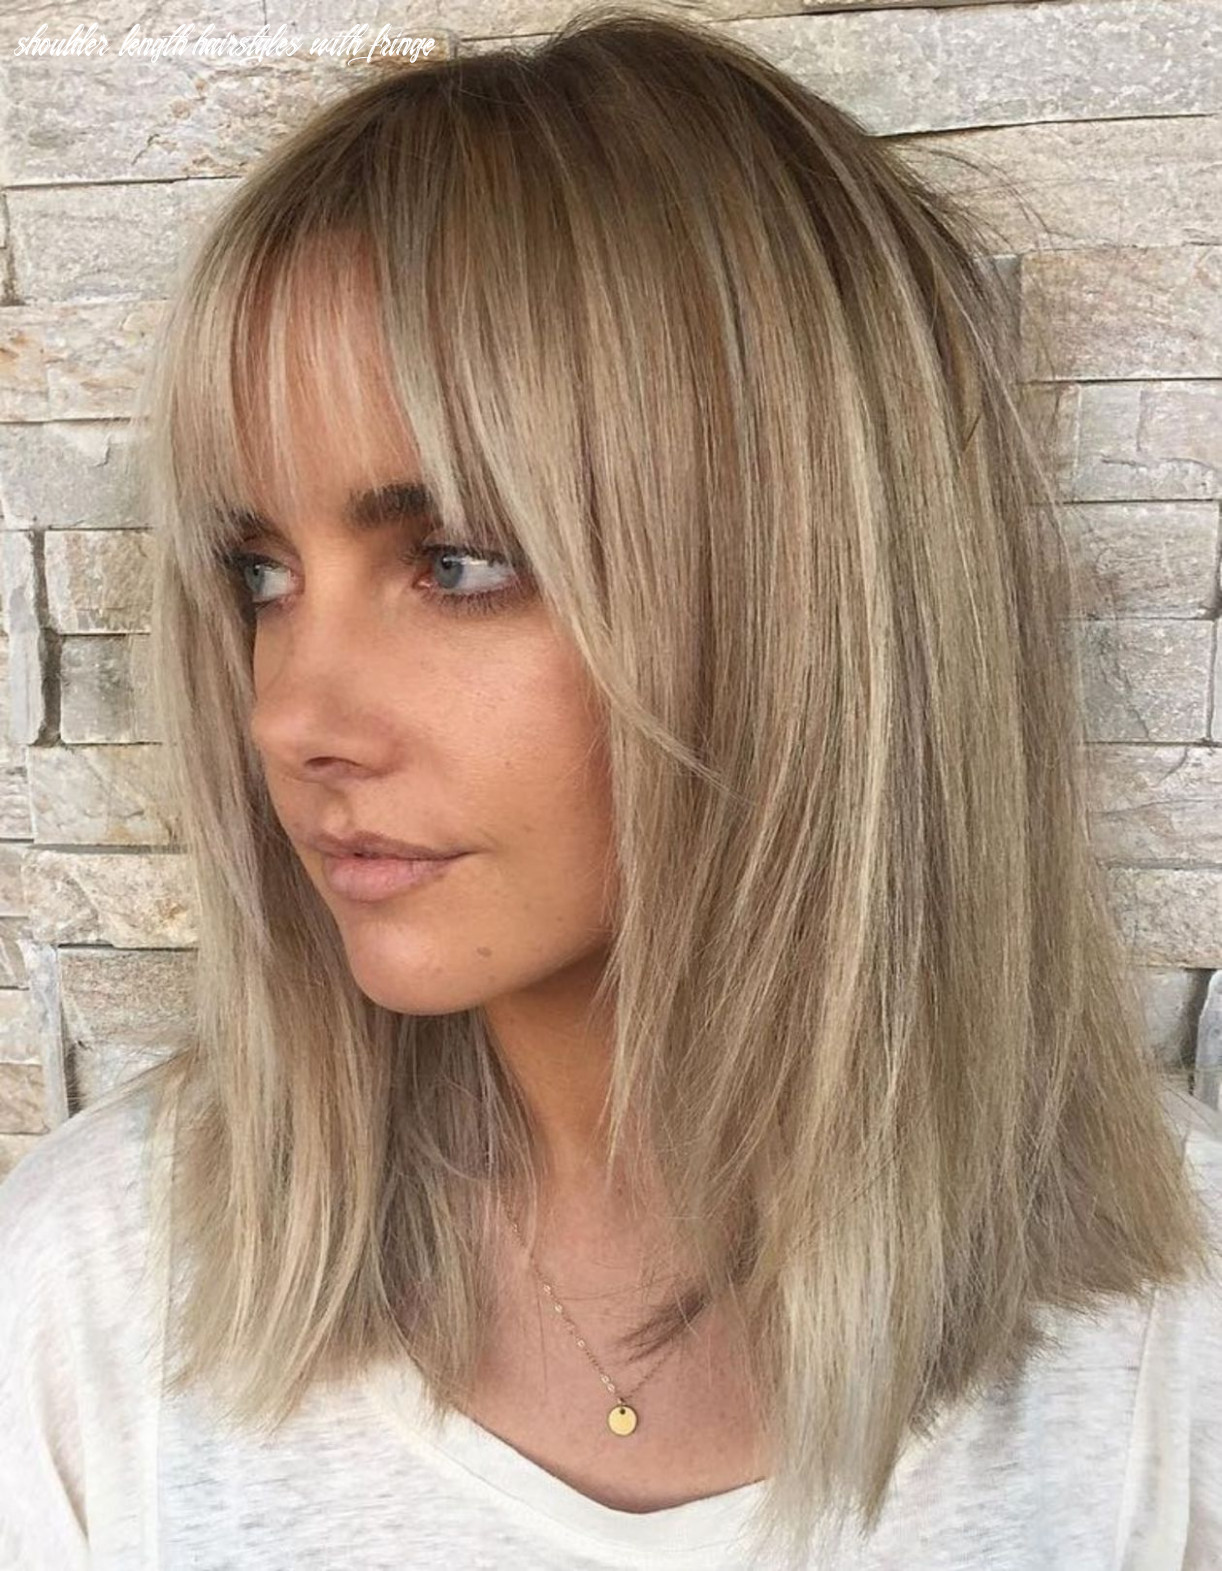 Pin on fringe hairstyles shoulder length hairstyles with fringe